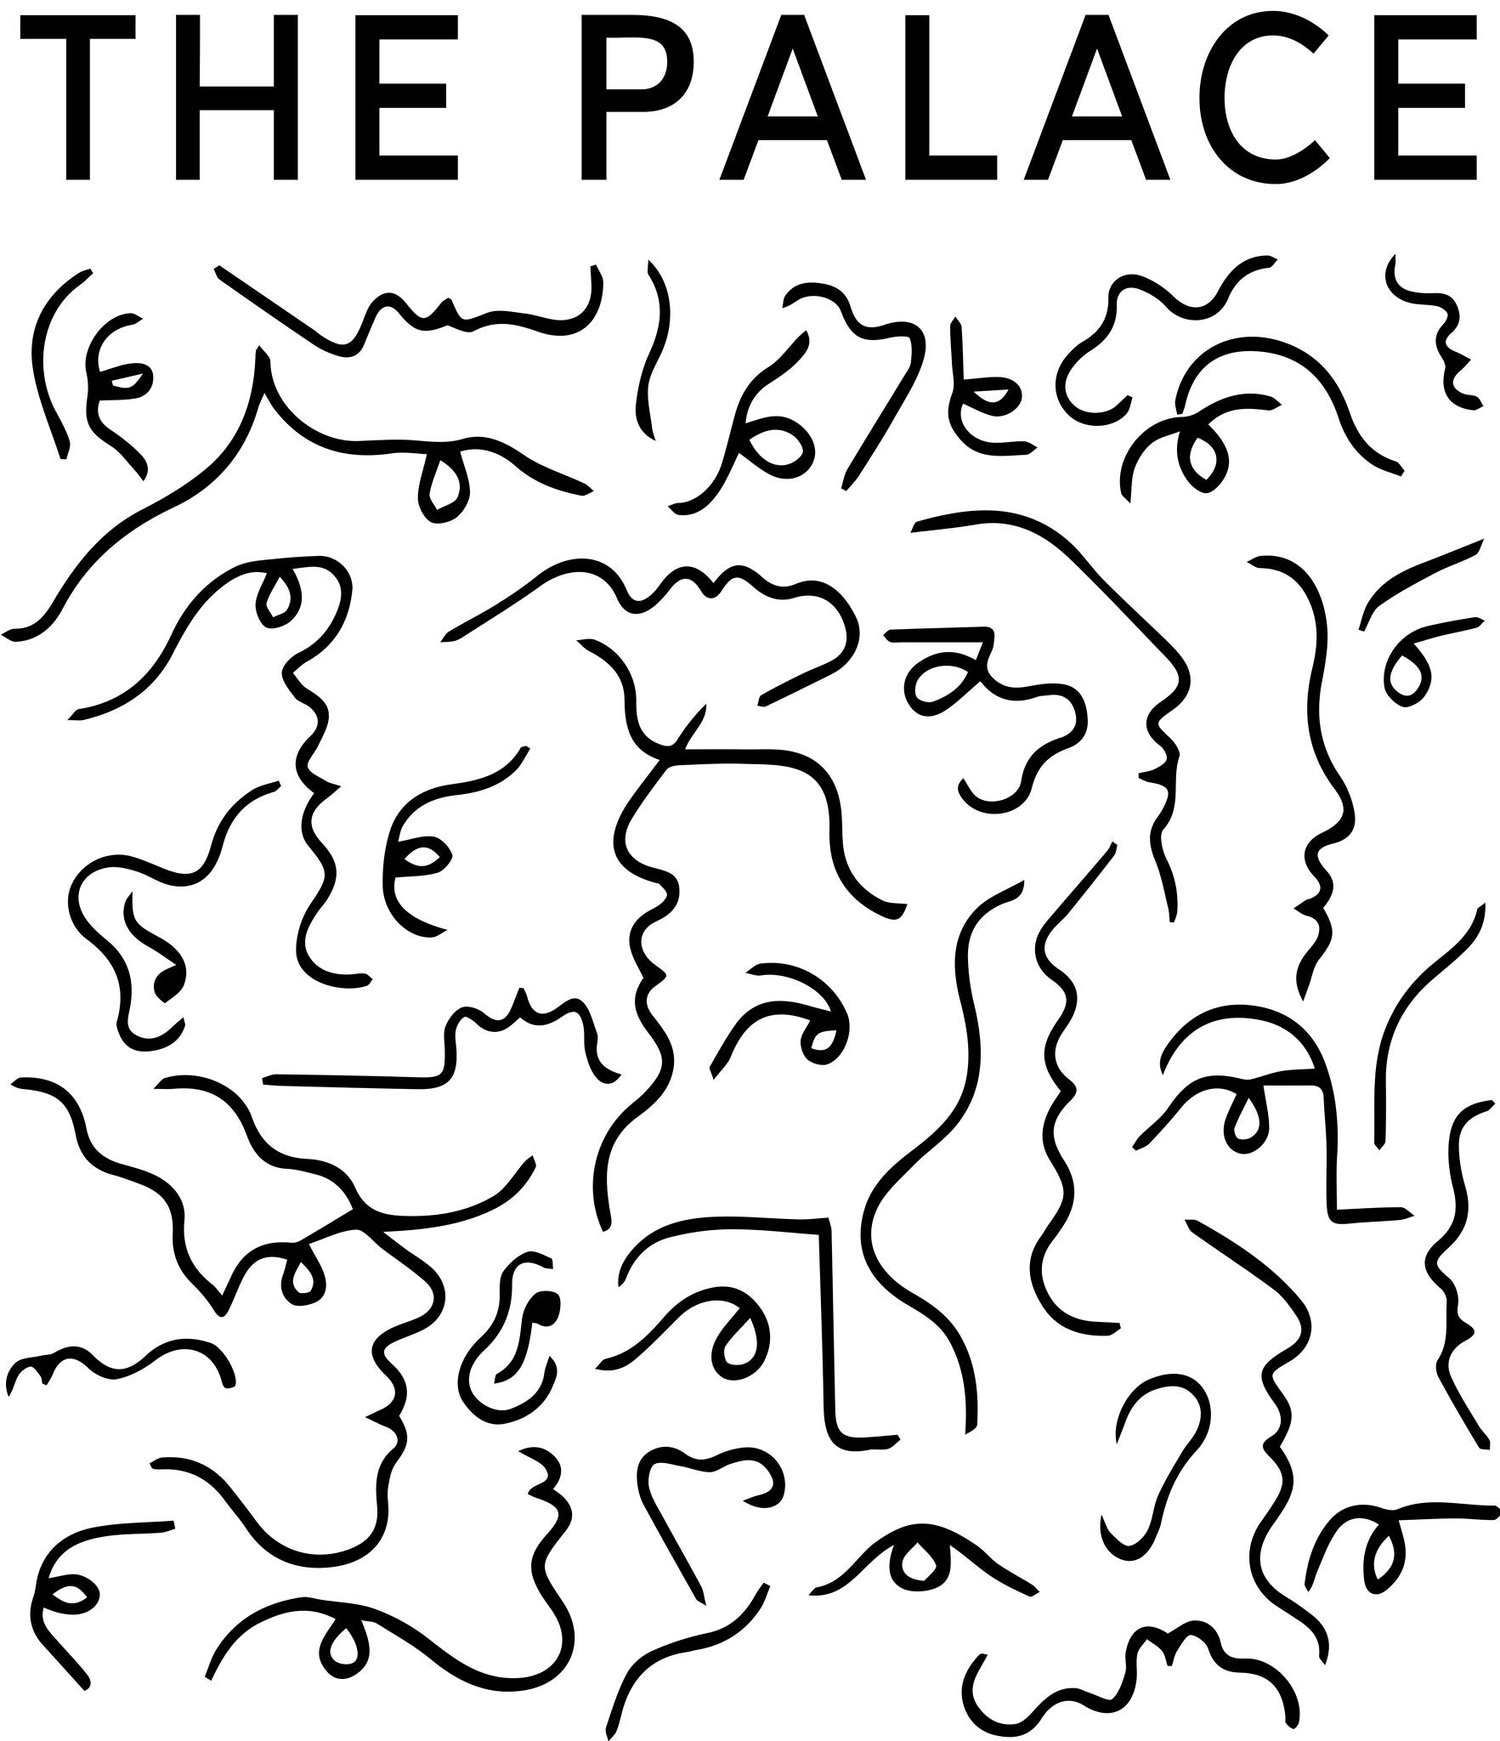 THE PALACE COLLECTIVE